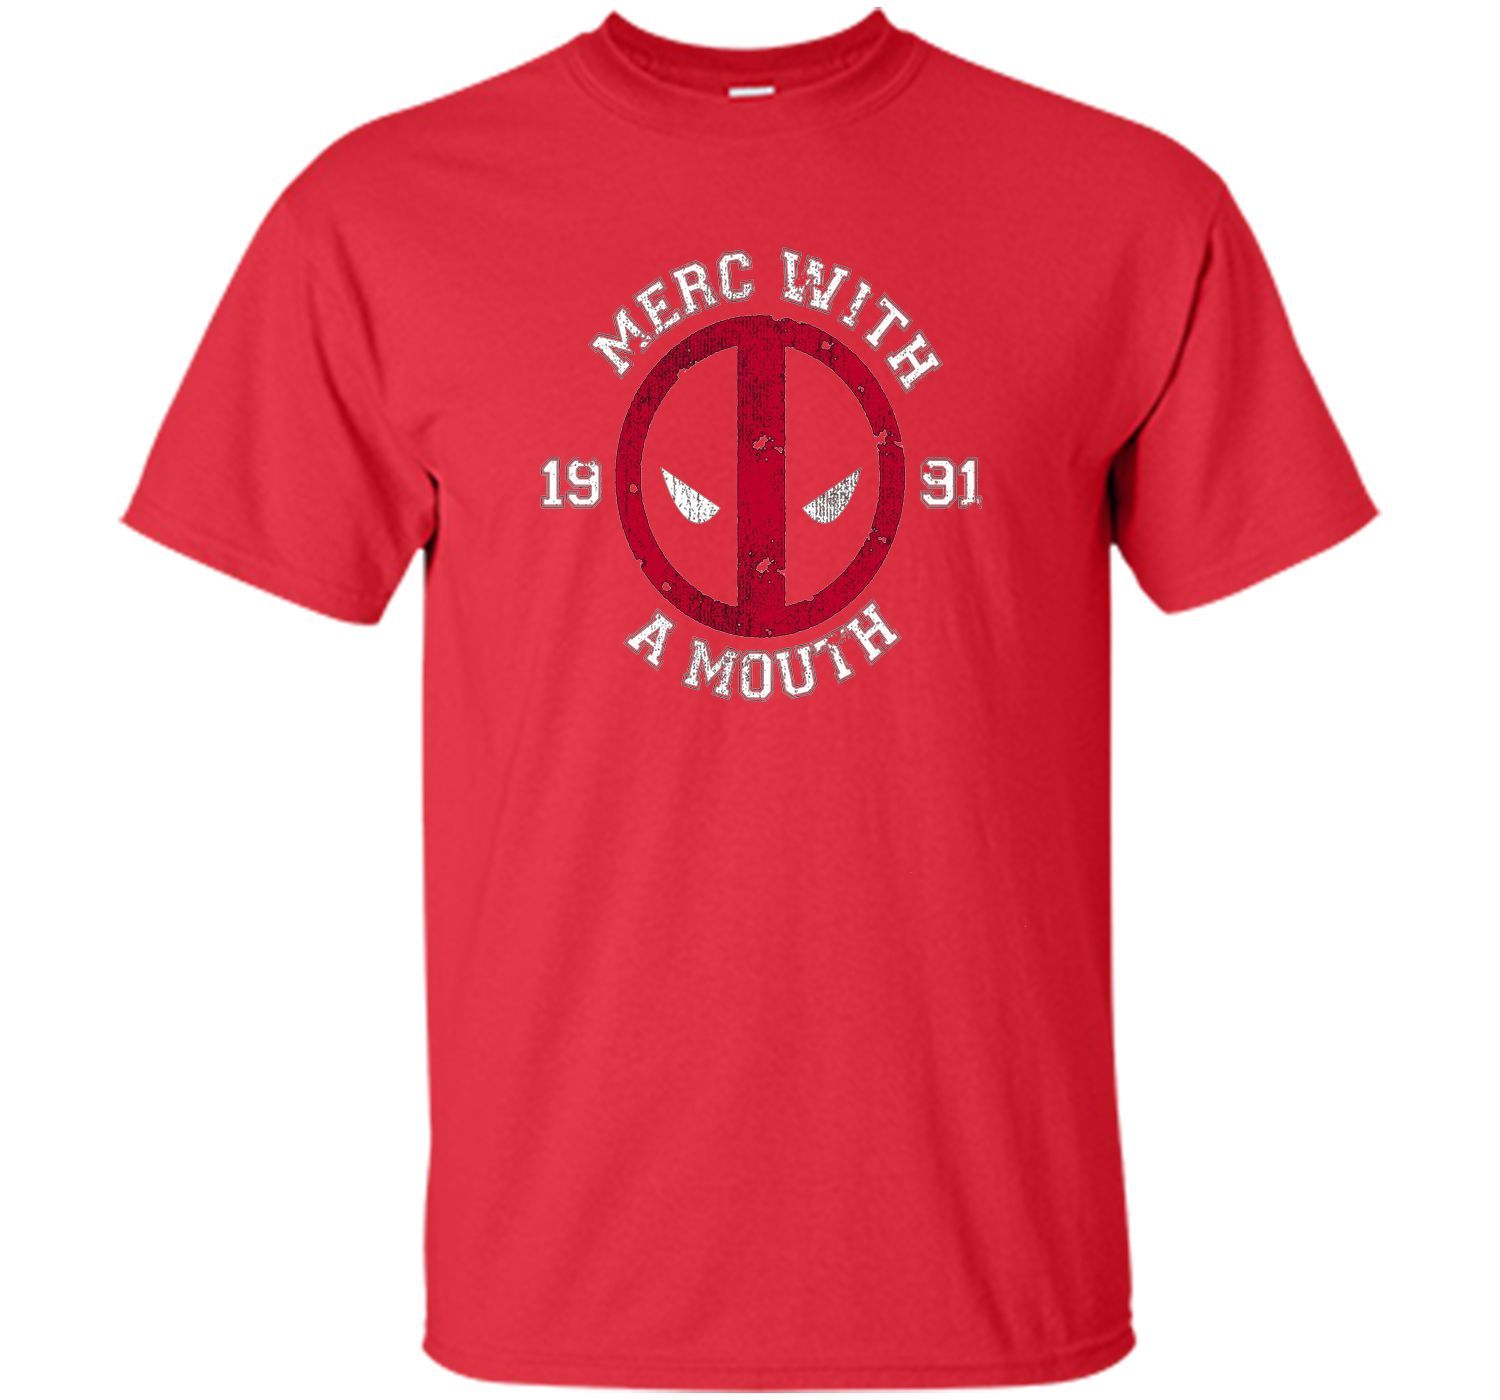 Marvel Deadpool Merc With Mouth Graphic T-ShirtMarvel Deadpo